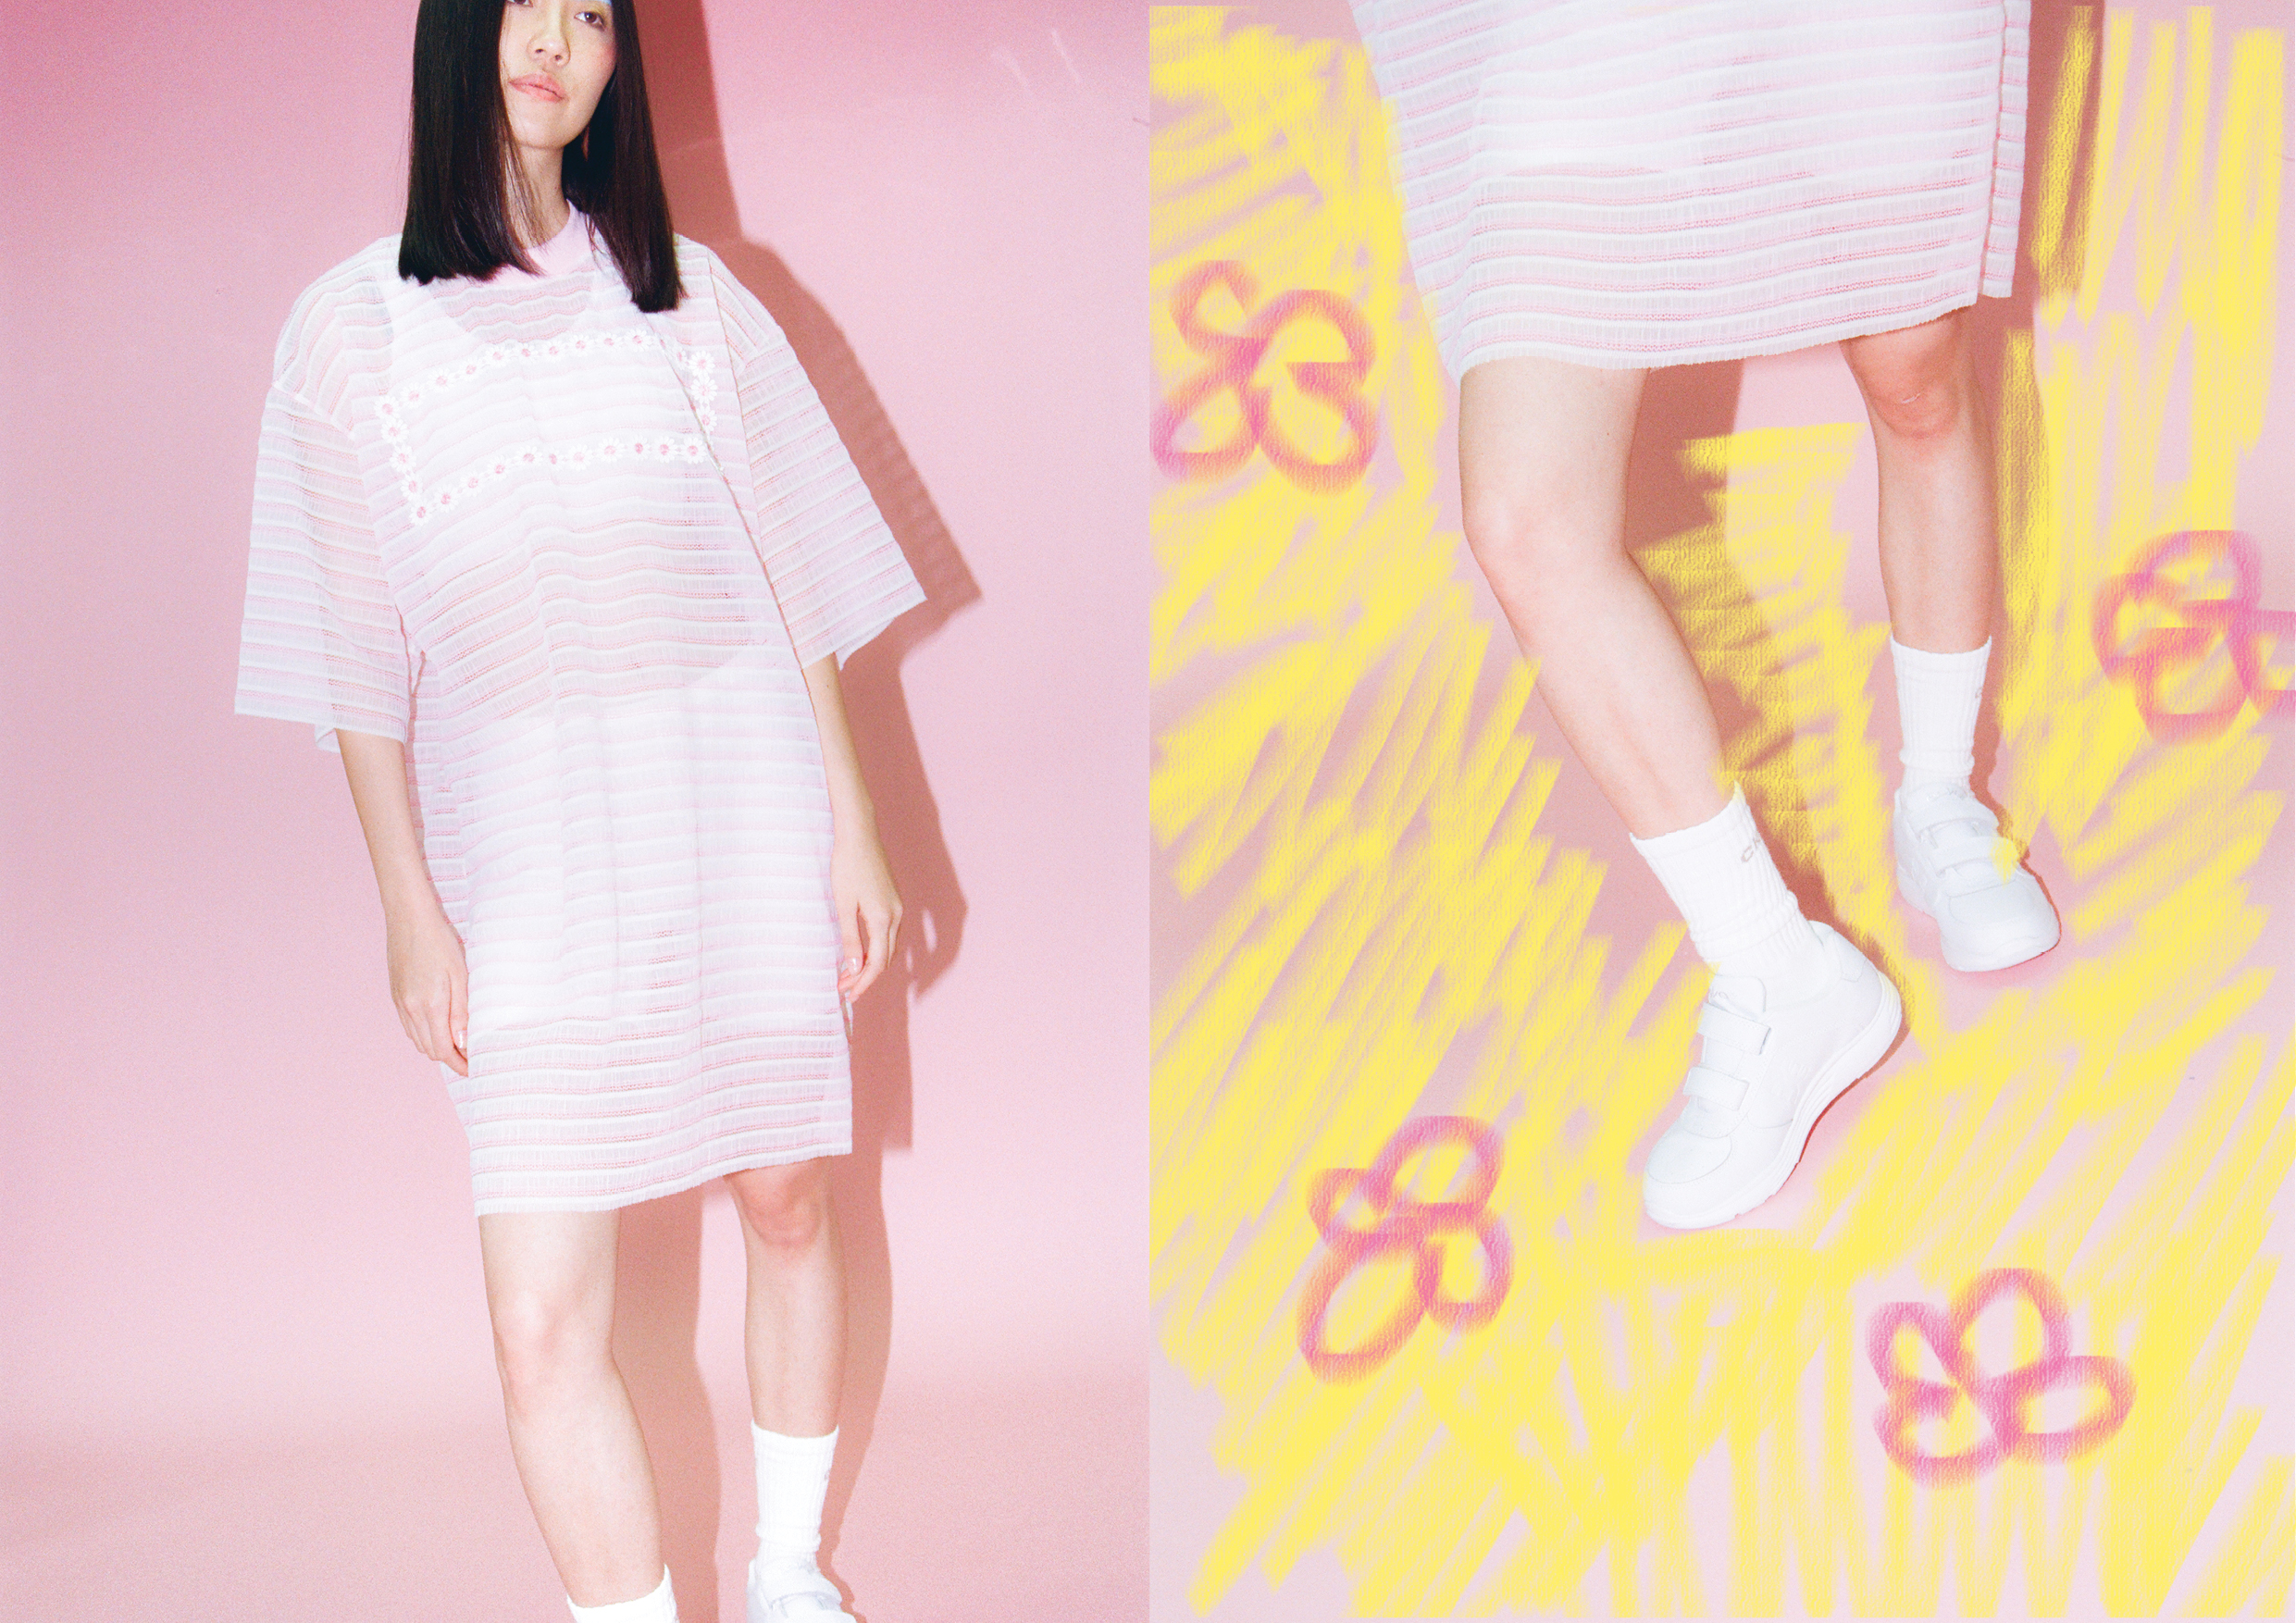 SS15 LOOKBOOK_PRESS23.jpg